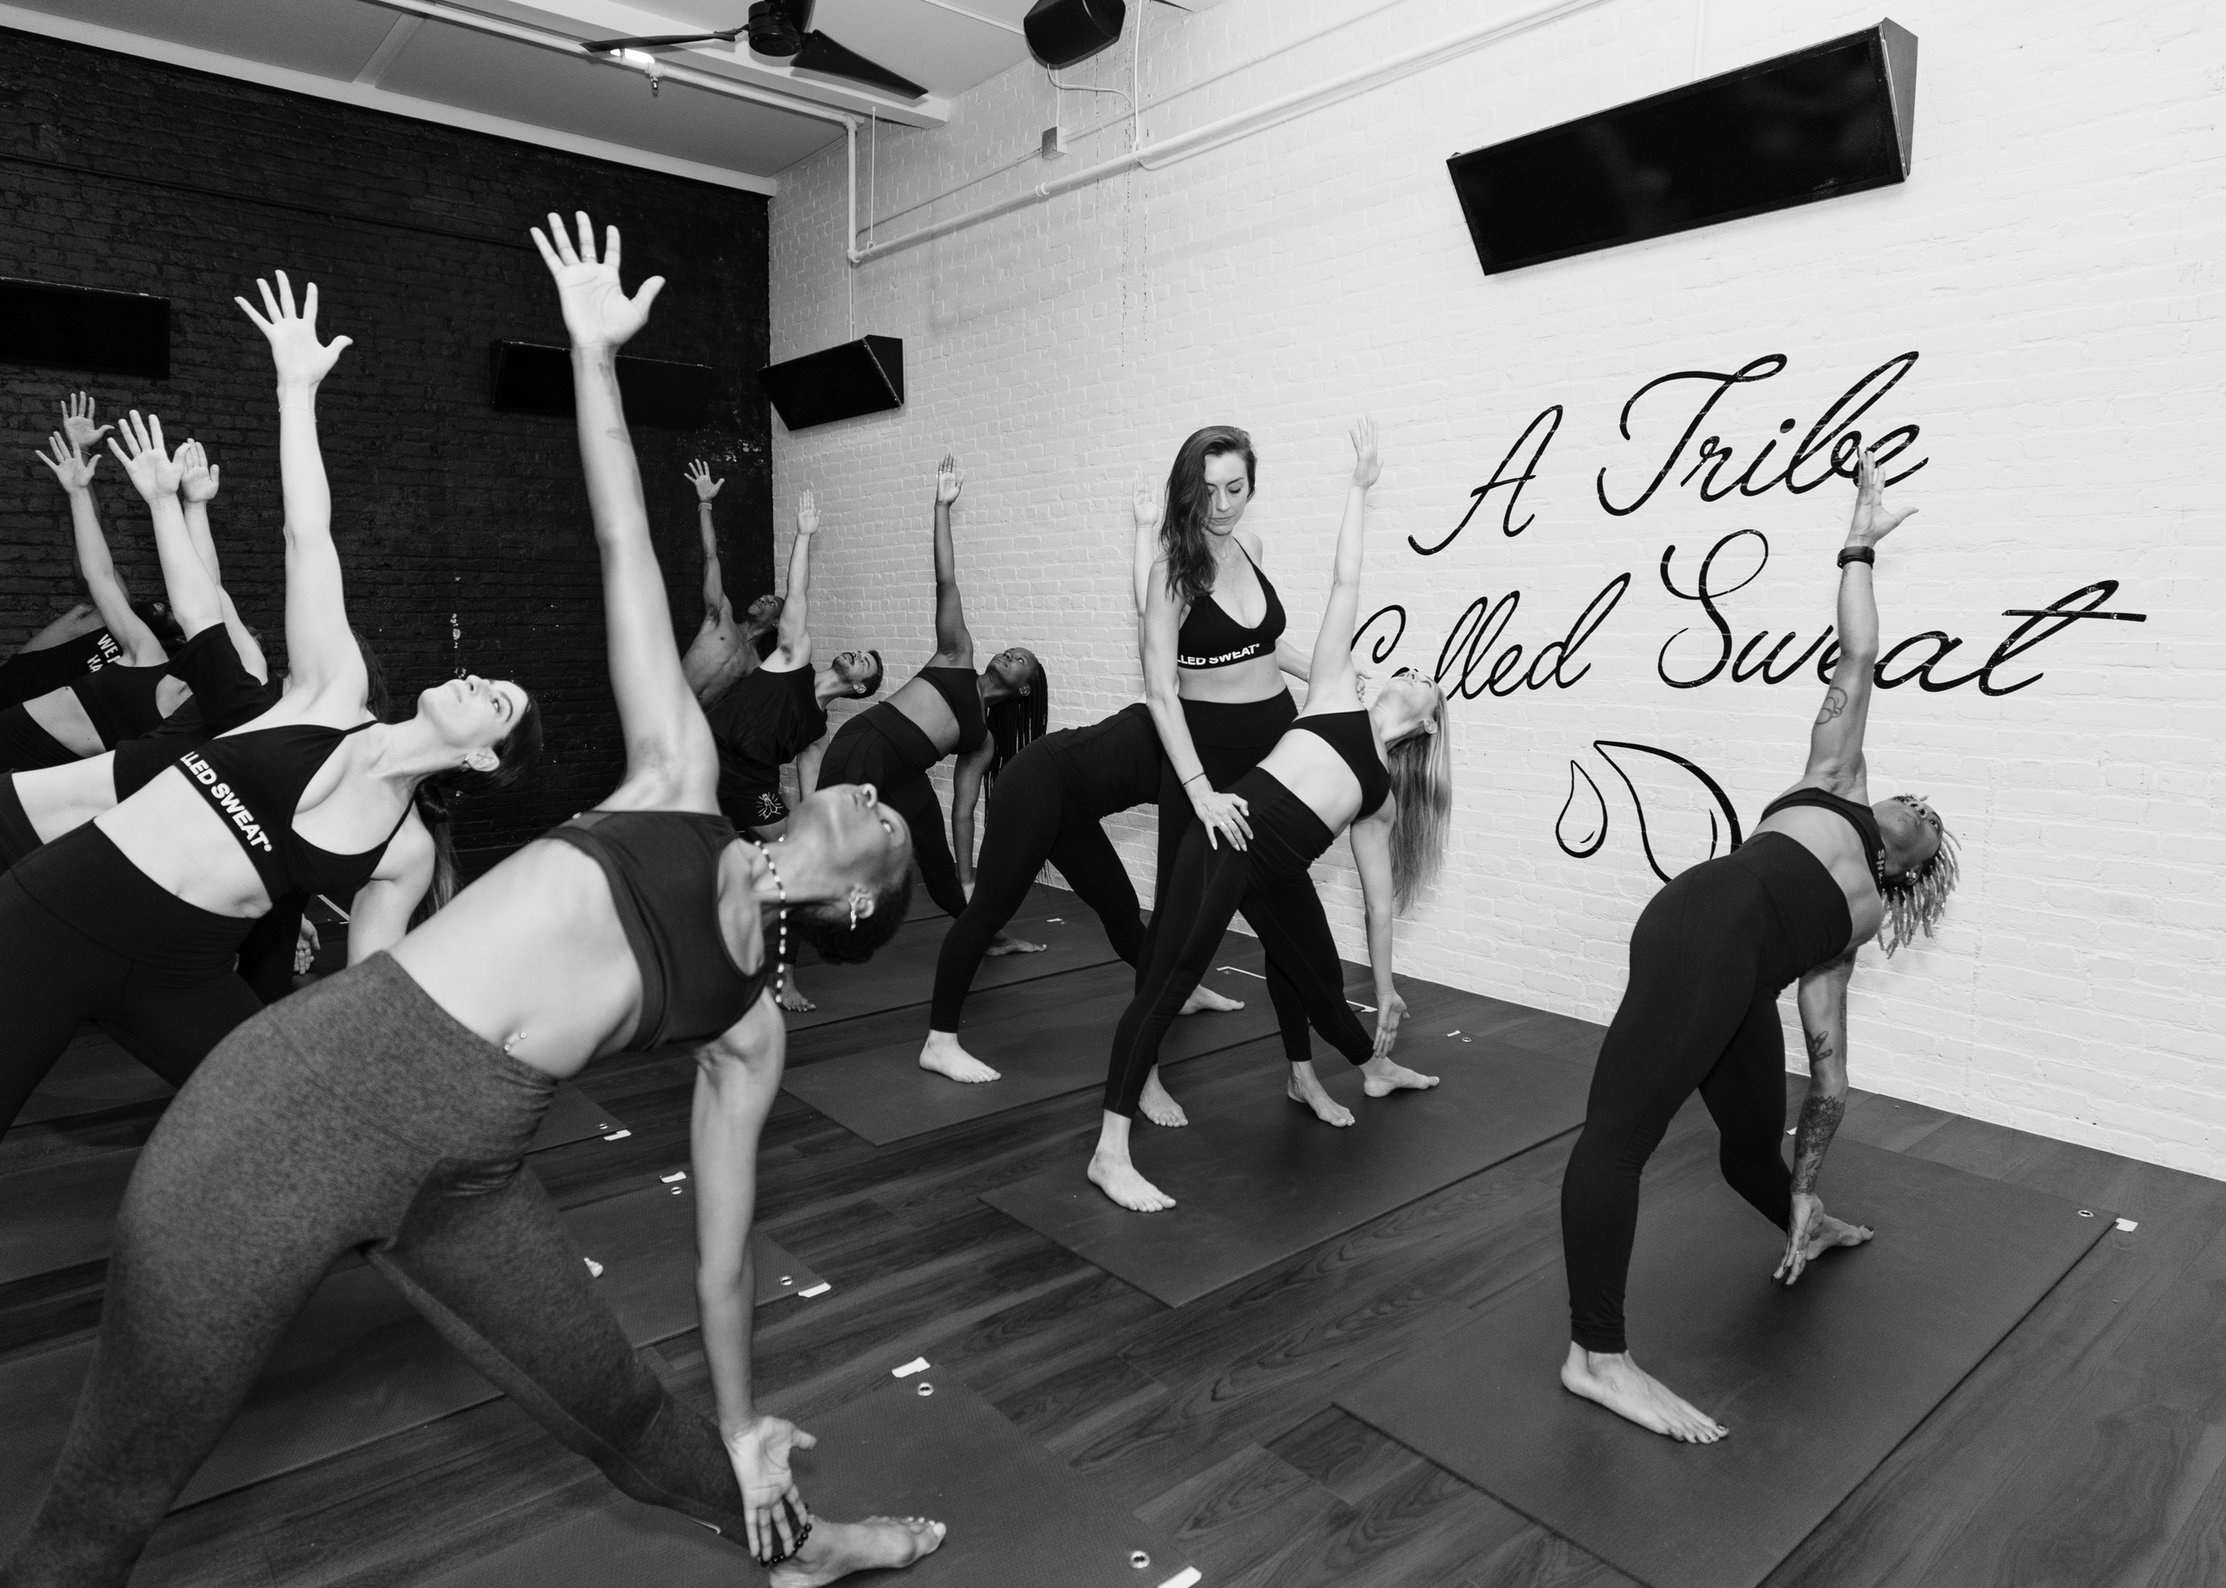 We Train Hard - Whether you are looking to teach or to deepen your knowledge of yoga, Y7 Studio's comprehensive Teacher Training programs will give you the tools to do so. Each of our programs are created in alignment with the Yoga Alliance guidelines, while going above and beyond the requirements by providing our students with more contact hours, hands-on experience and practical teaching applications.